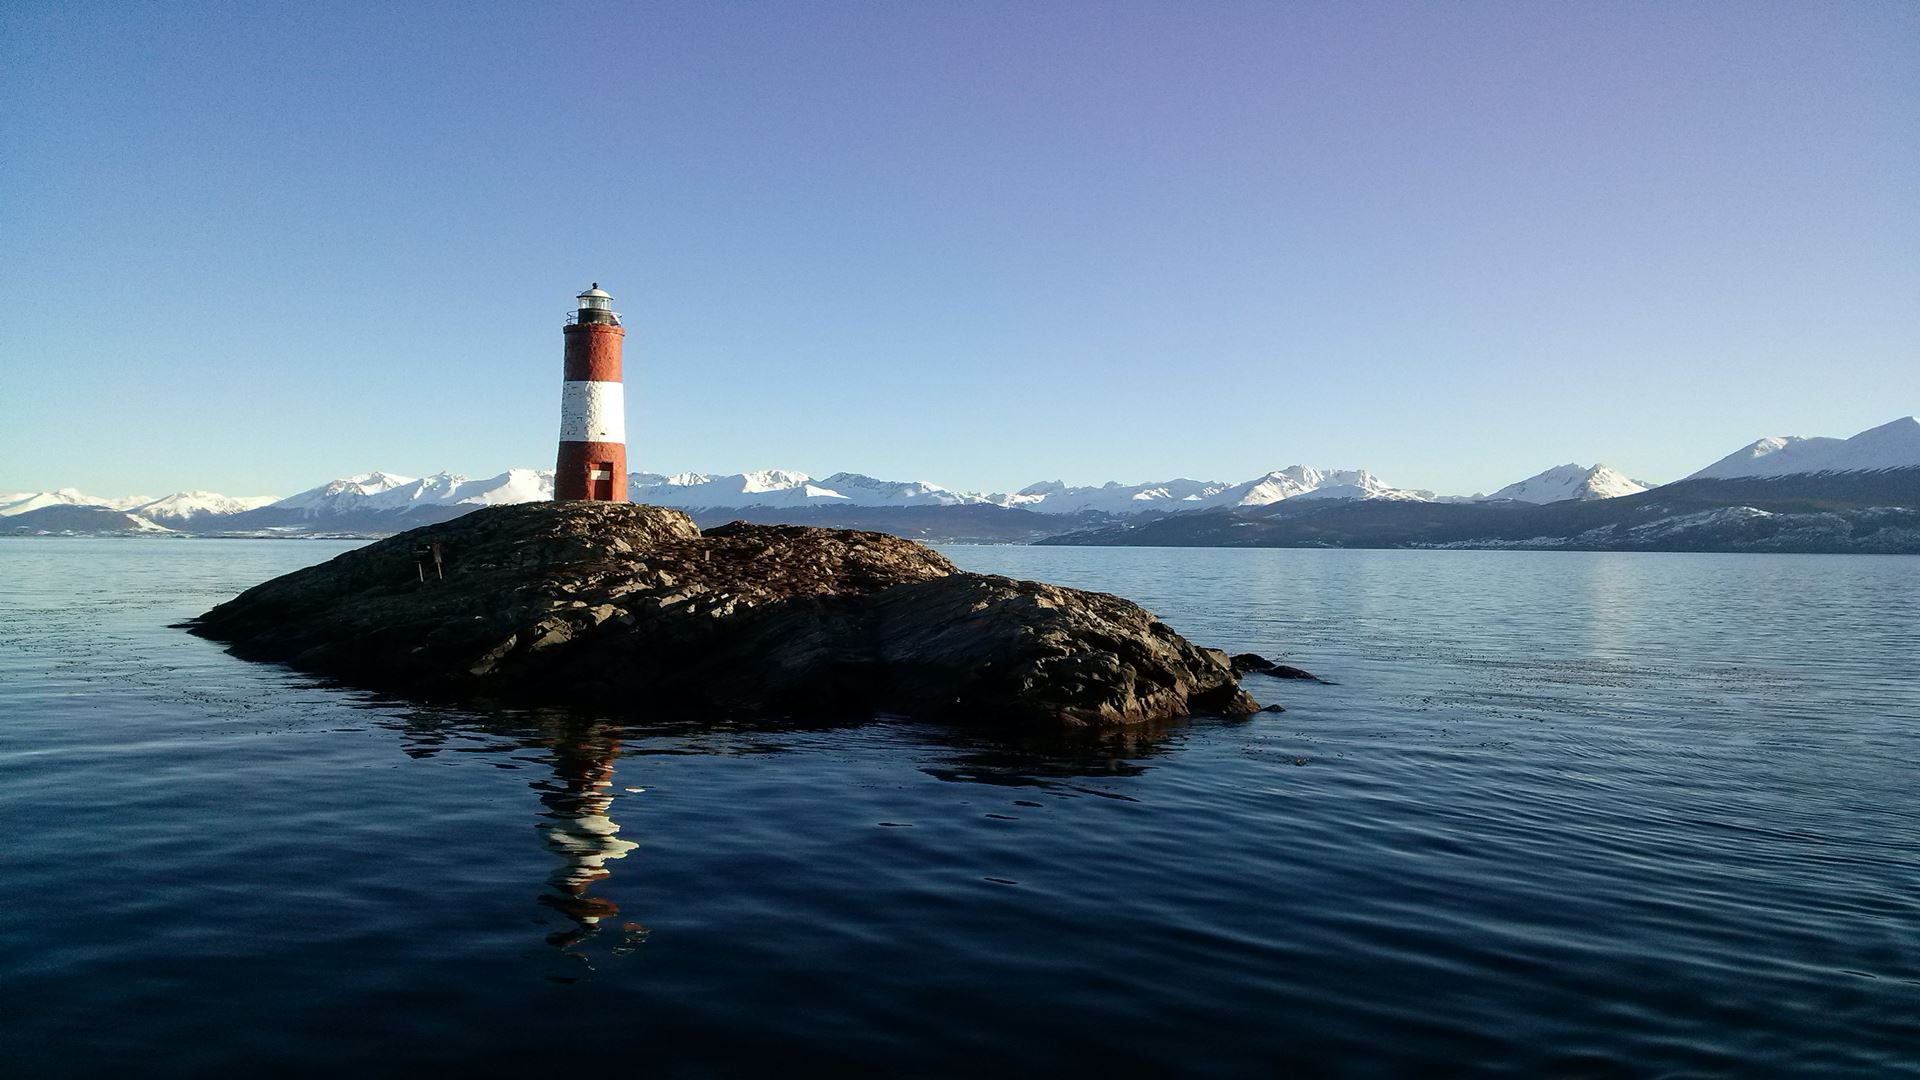 BEAGLE CHANNEL YACHT SAILING